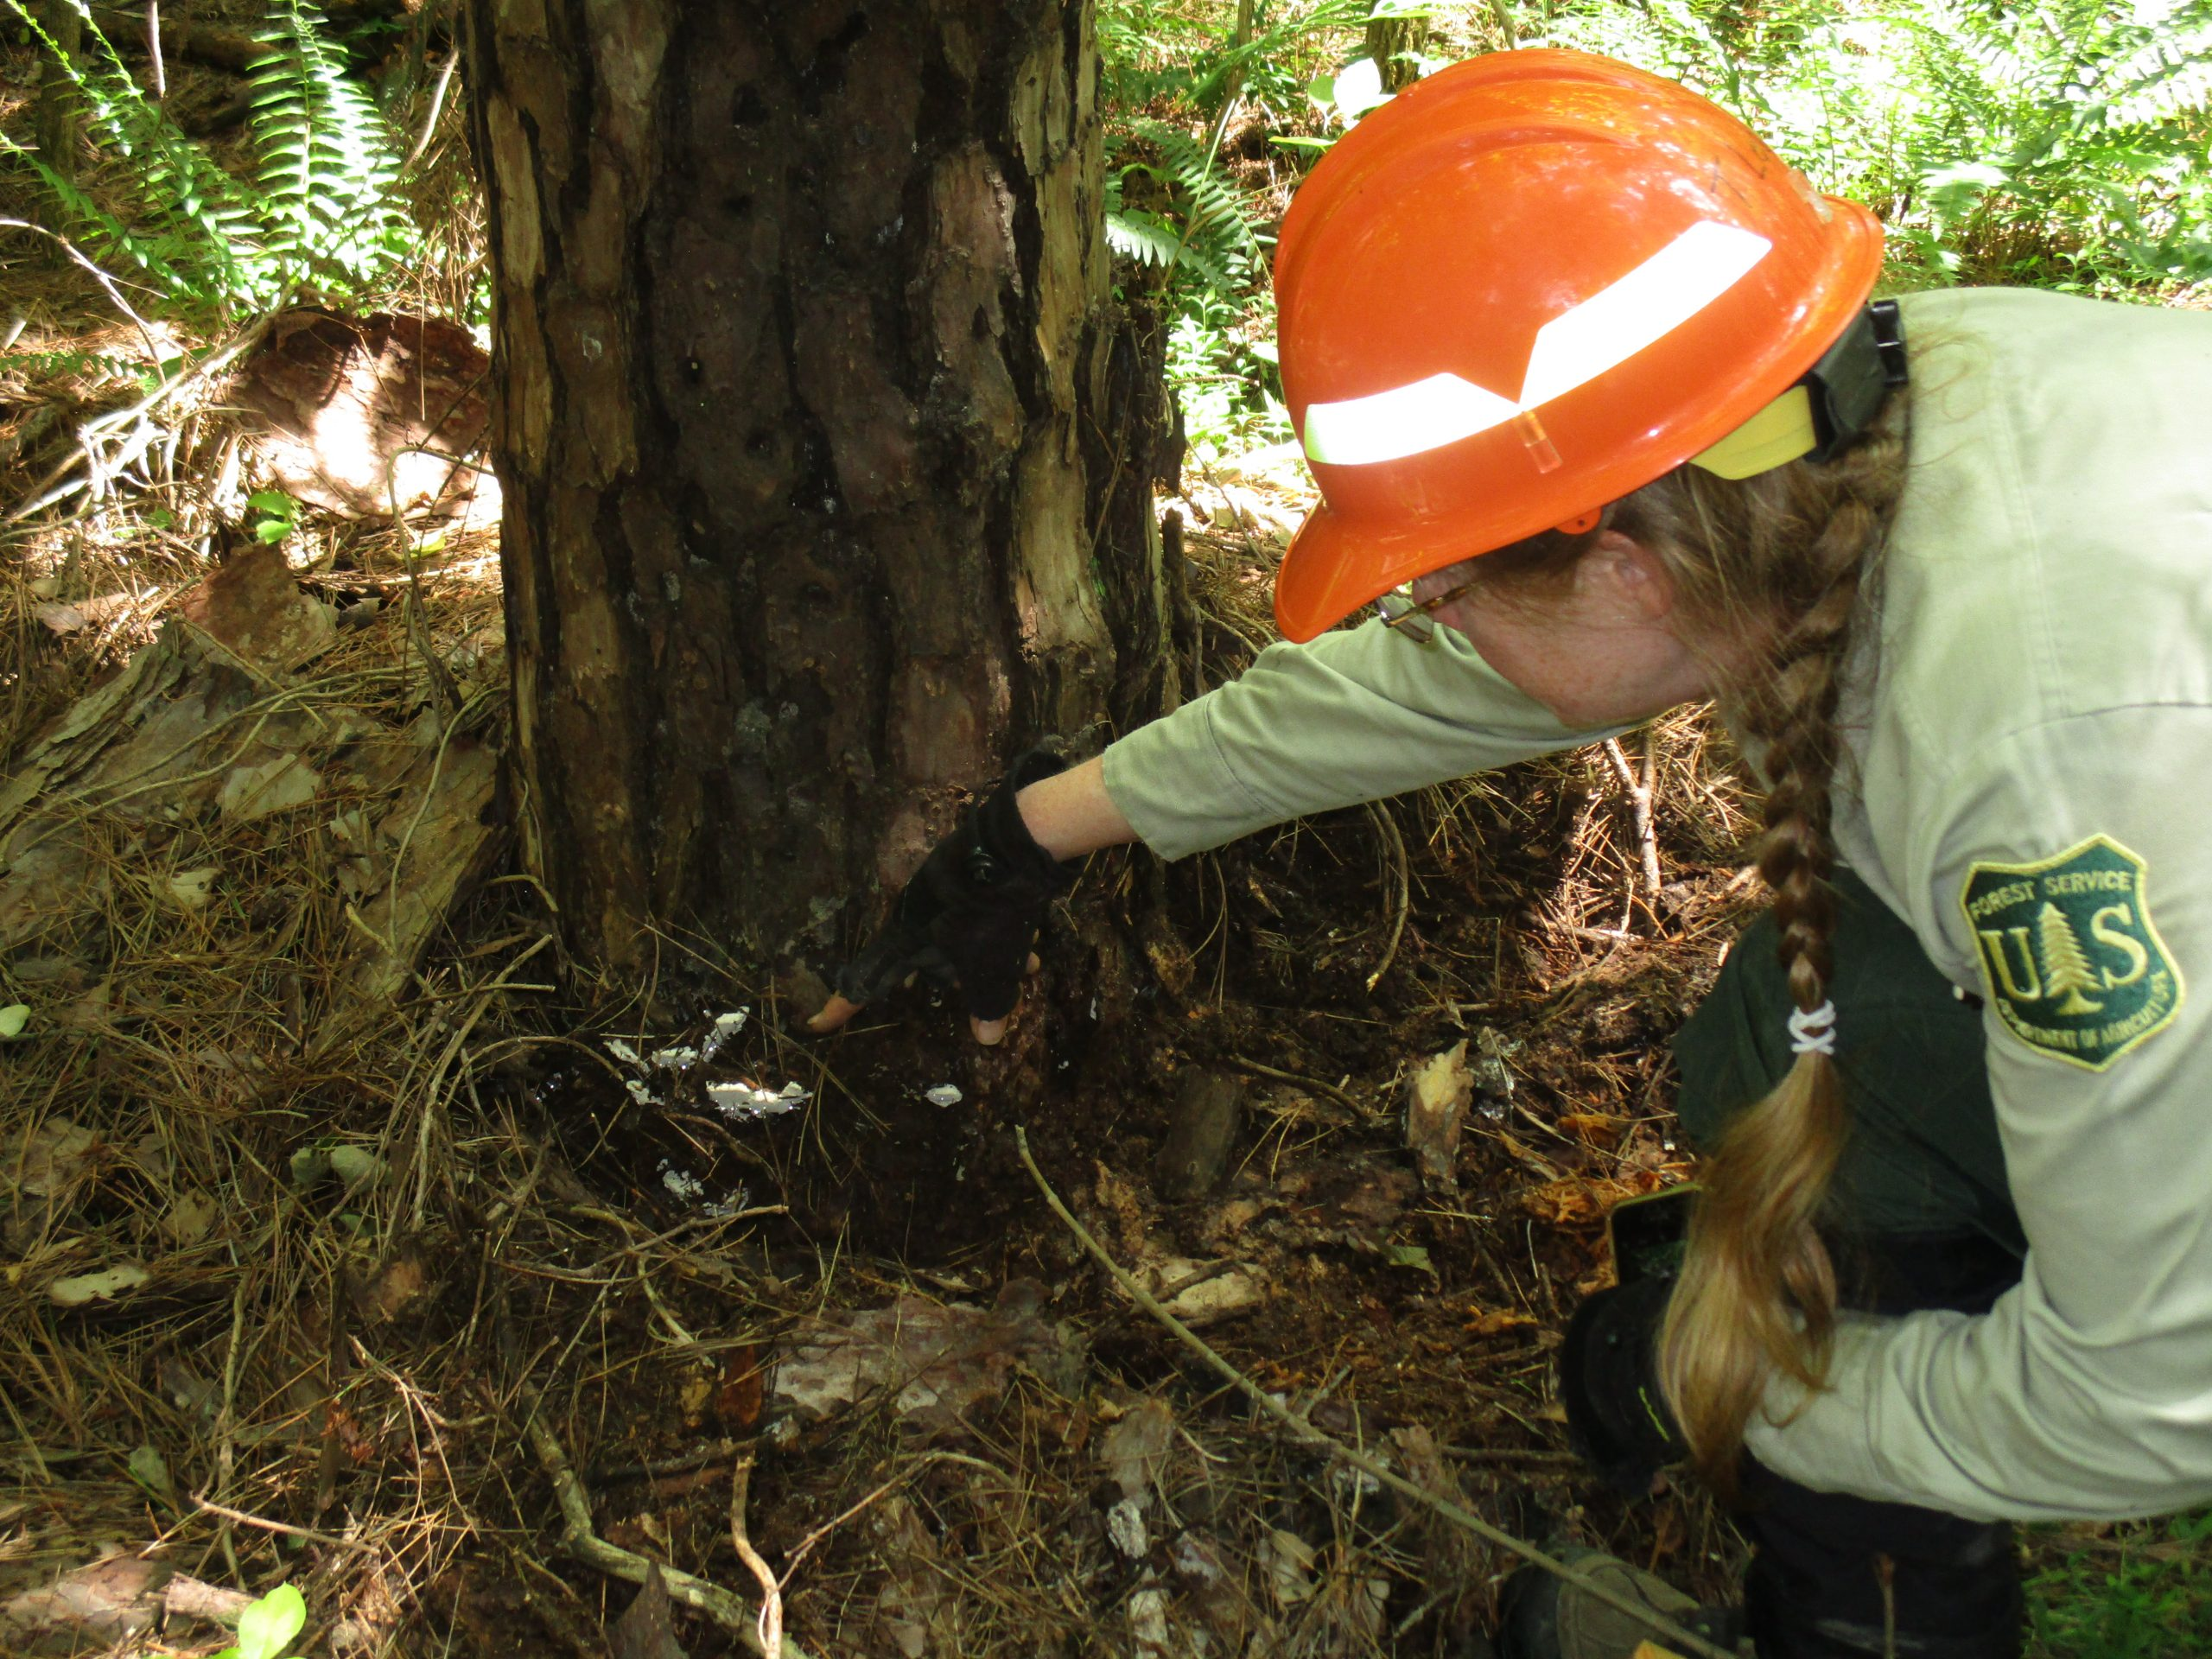 Here's more information on the jobs that tree service businesses. U S Forest Service Releases Report On Insects Disease Radioresultsnetwork Com